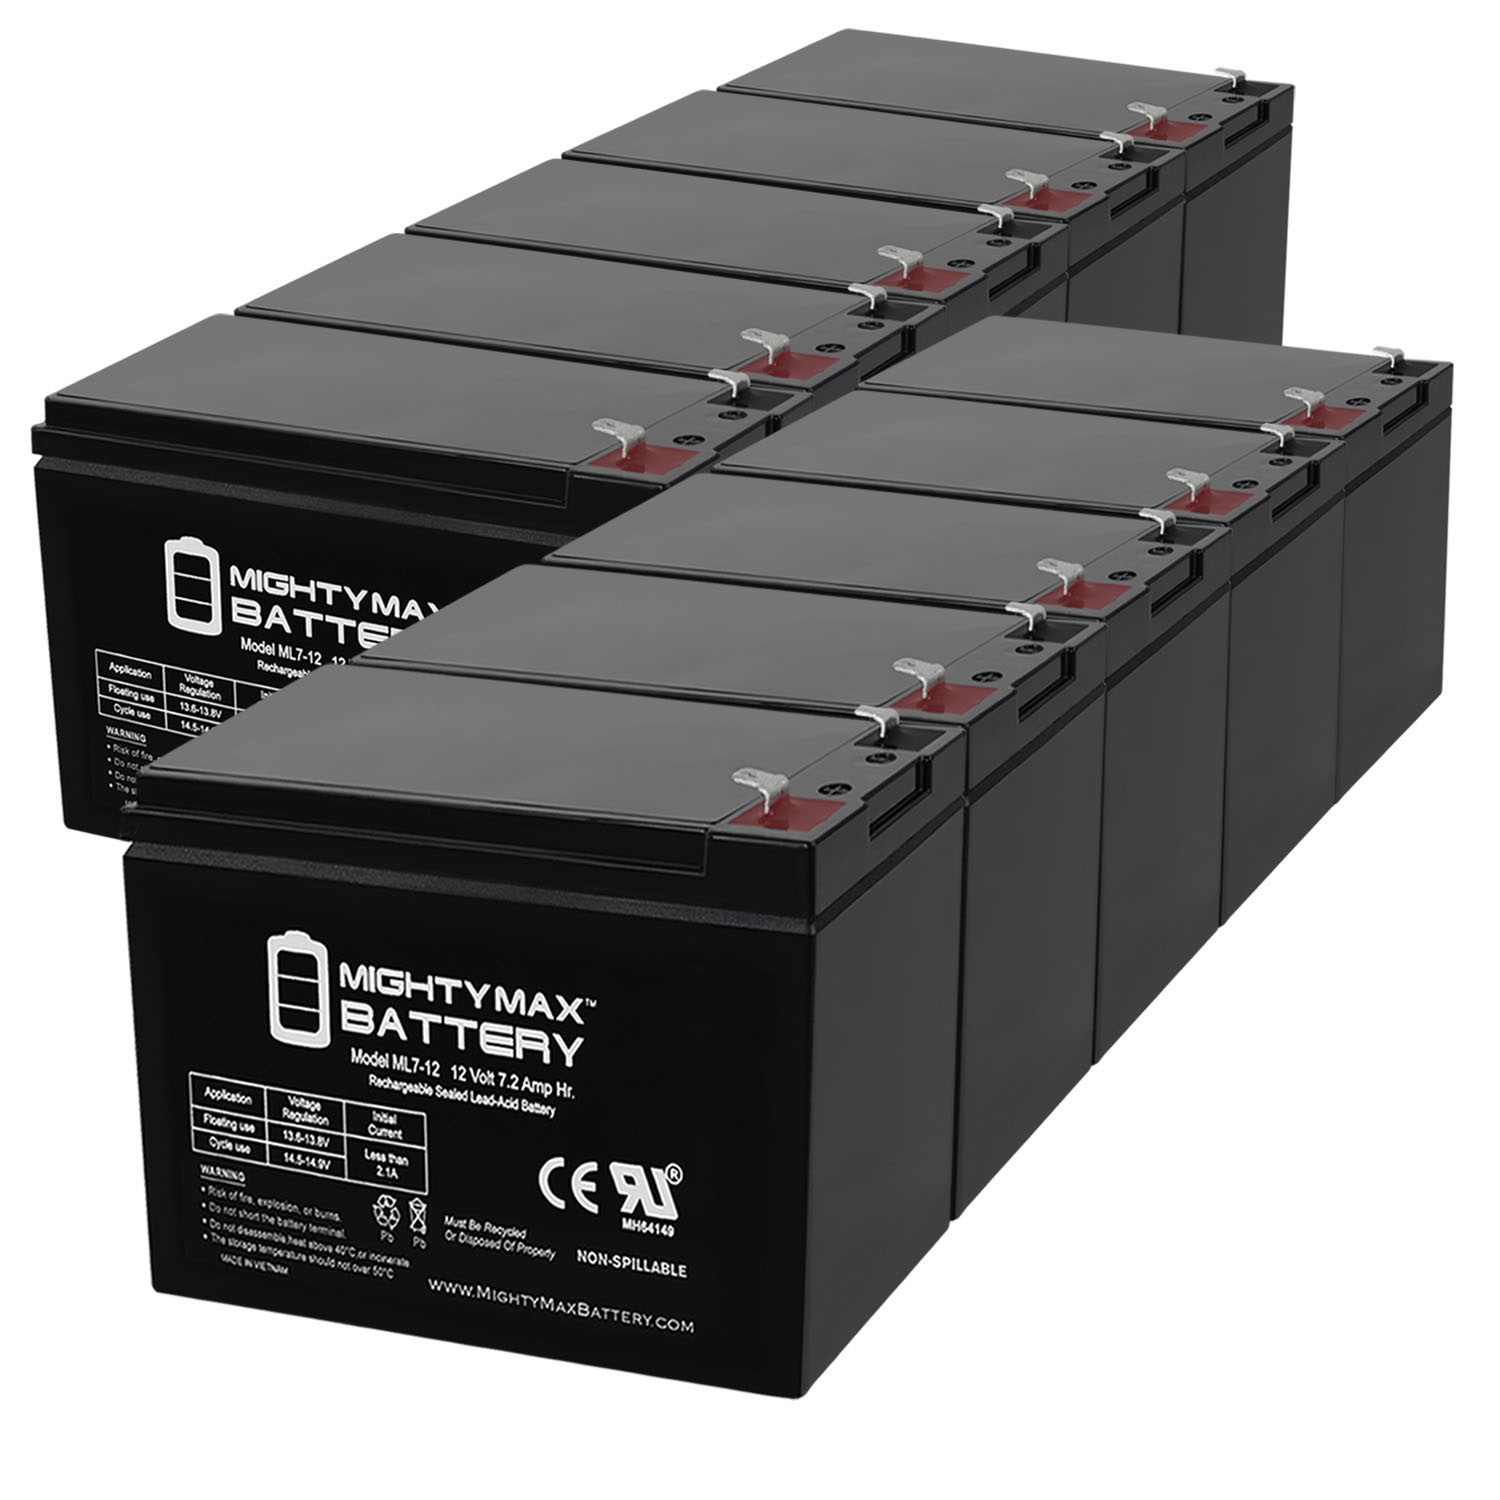 ML7-12 - 12V 7.2AH Replacement Battery for APC BES550R - 10 Pack